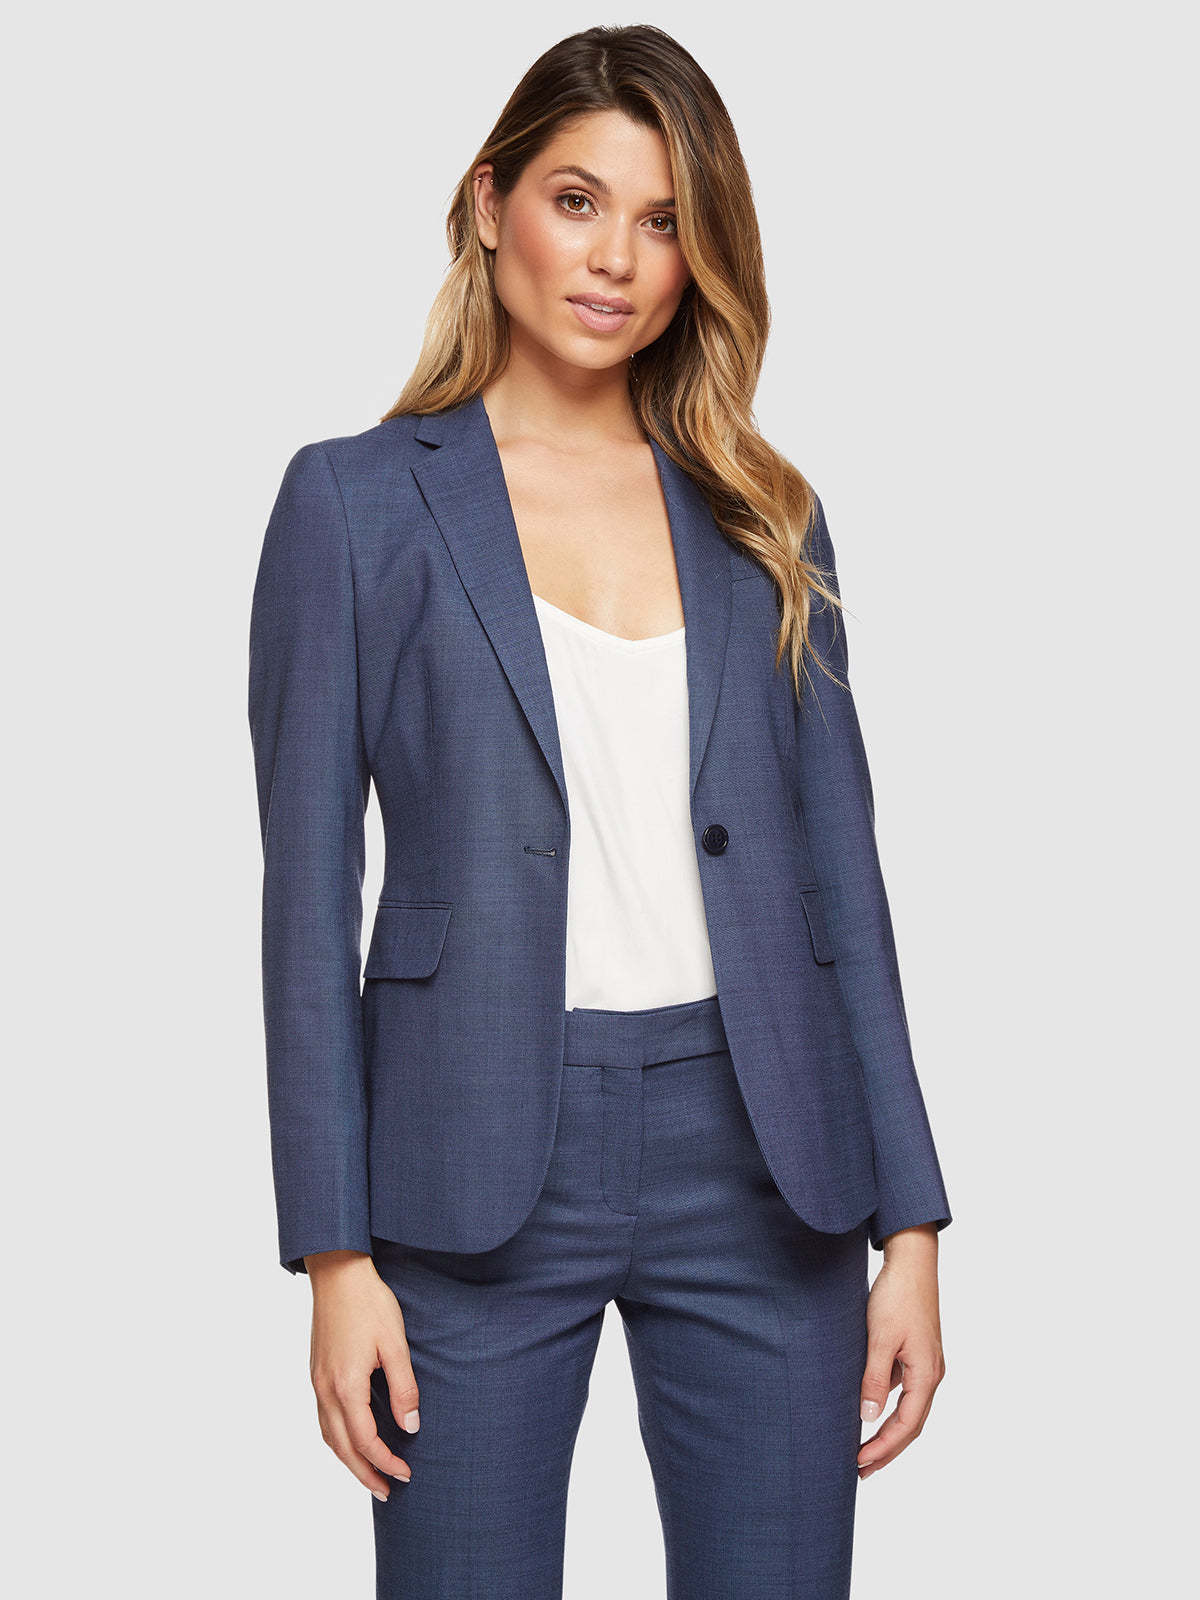 ALEXA WOOL STRETCH SUIT JACKET BLUE